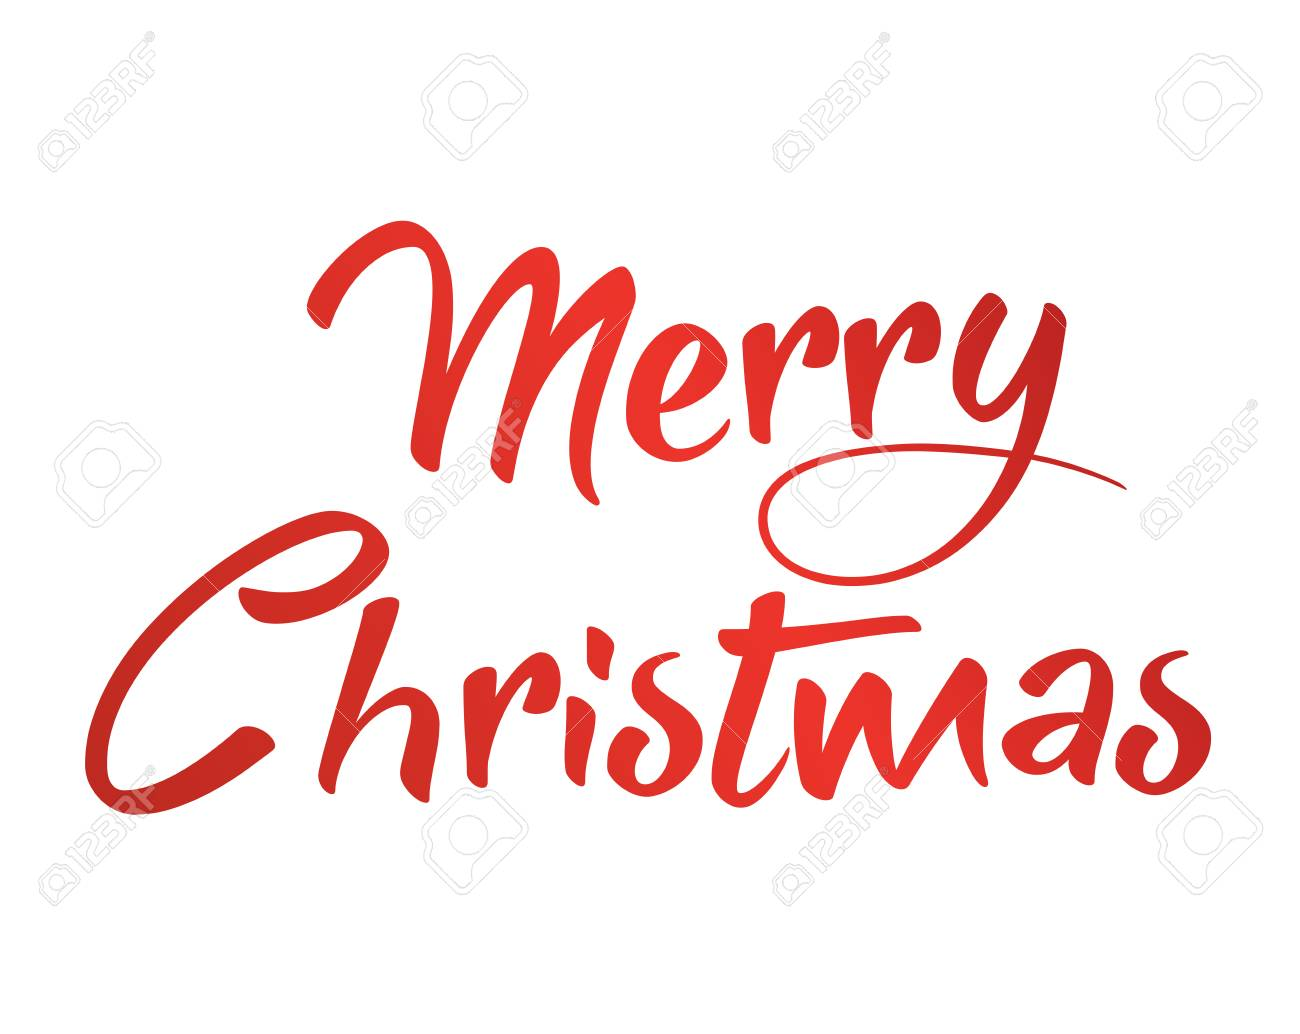 Merry Christmas Writing.The Gradient Red Isolated Hand Writing Word Merry Christmas On